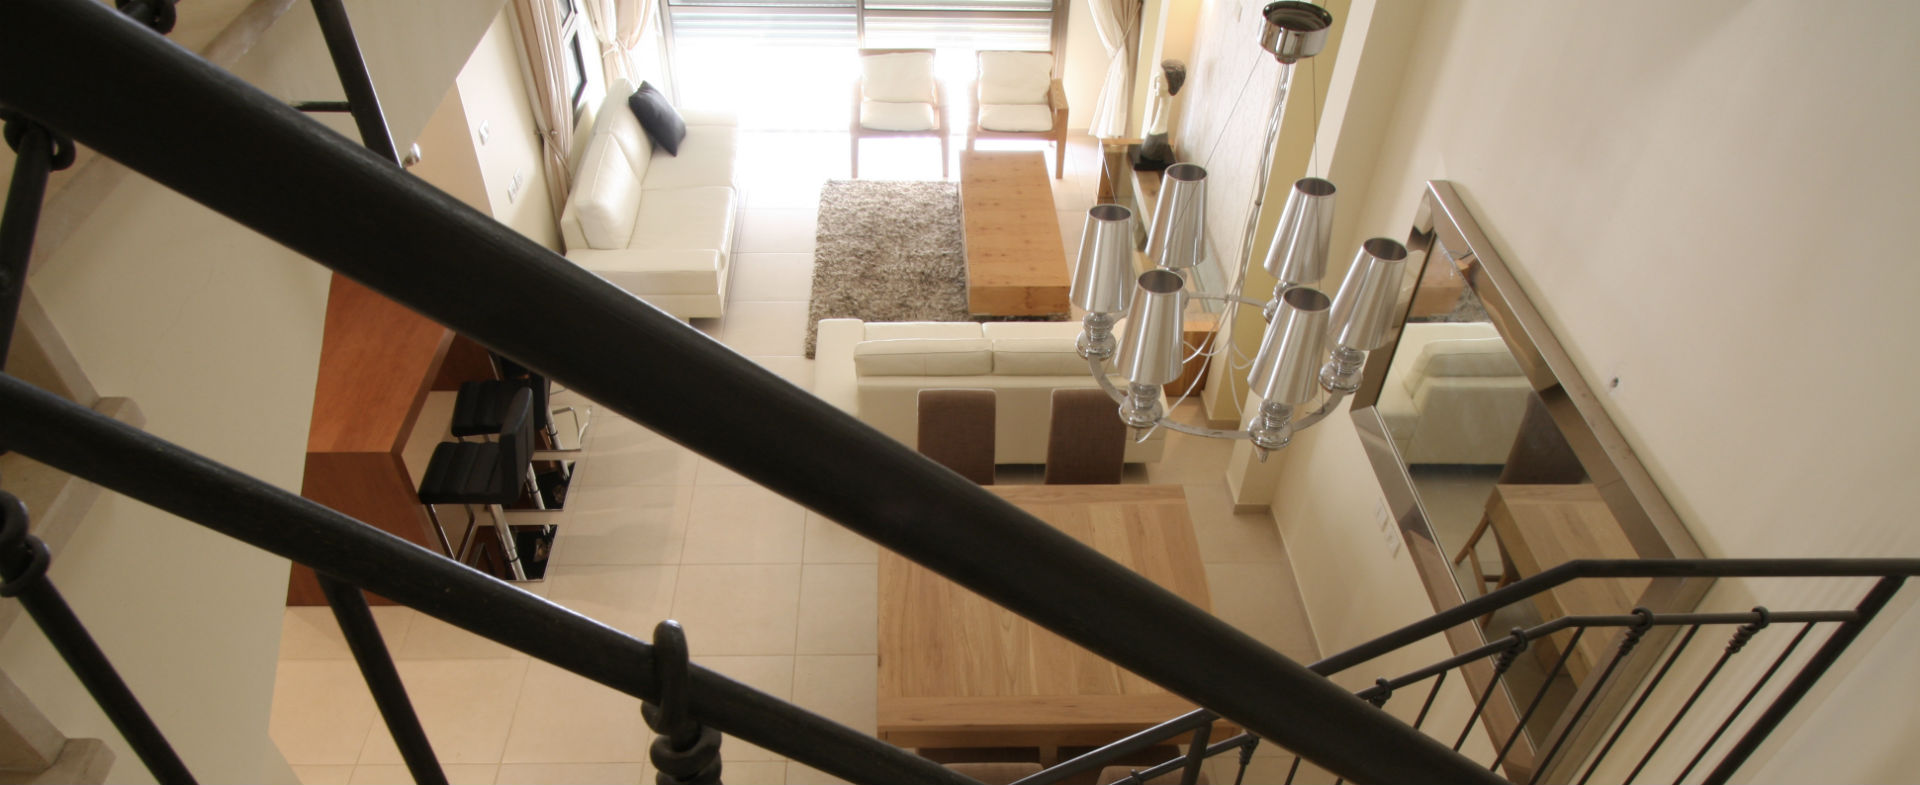 Apartment view in photo gallery